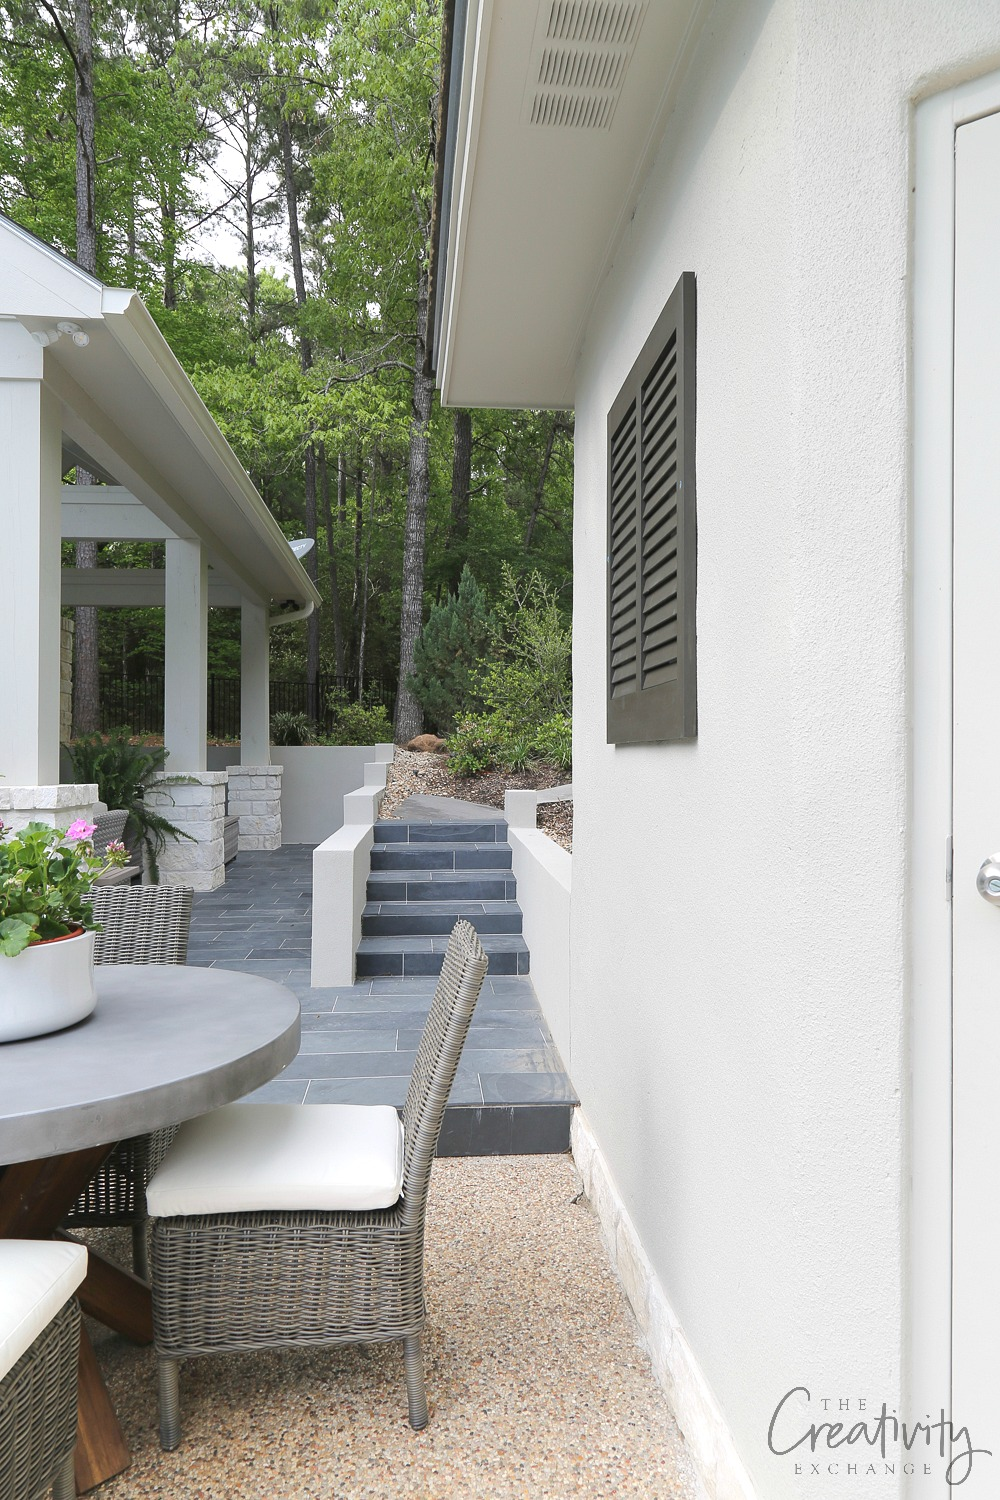 Be Inspired by This Dream Backyard Designed by Cyndy 5.jpg